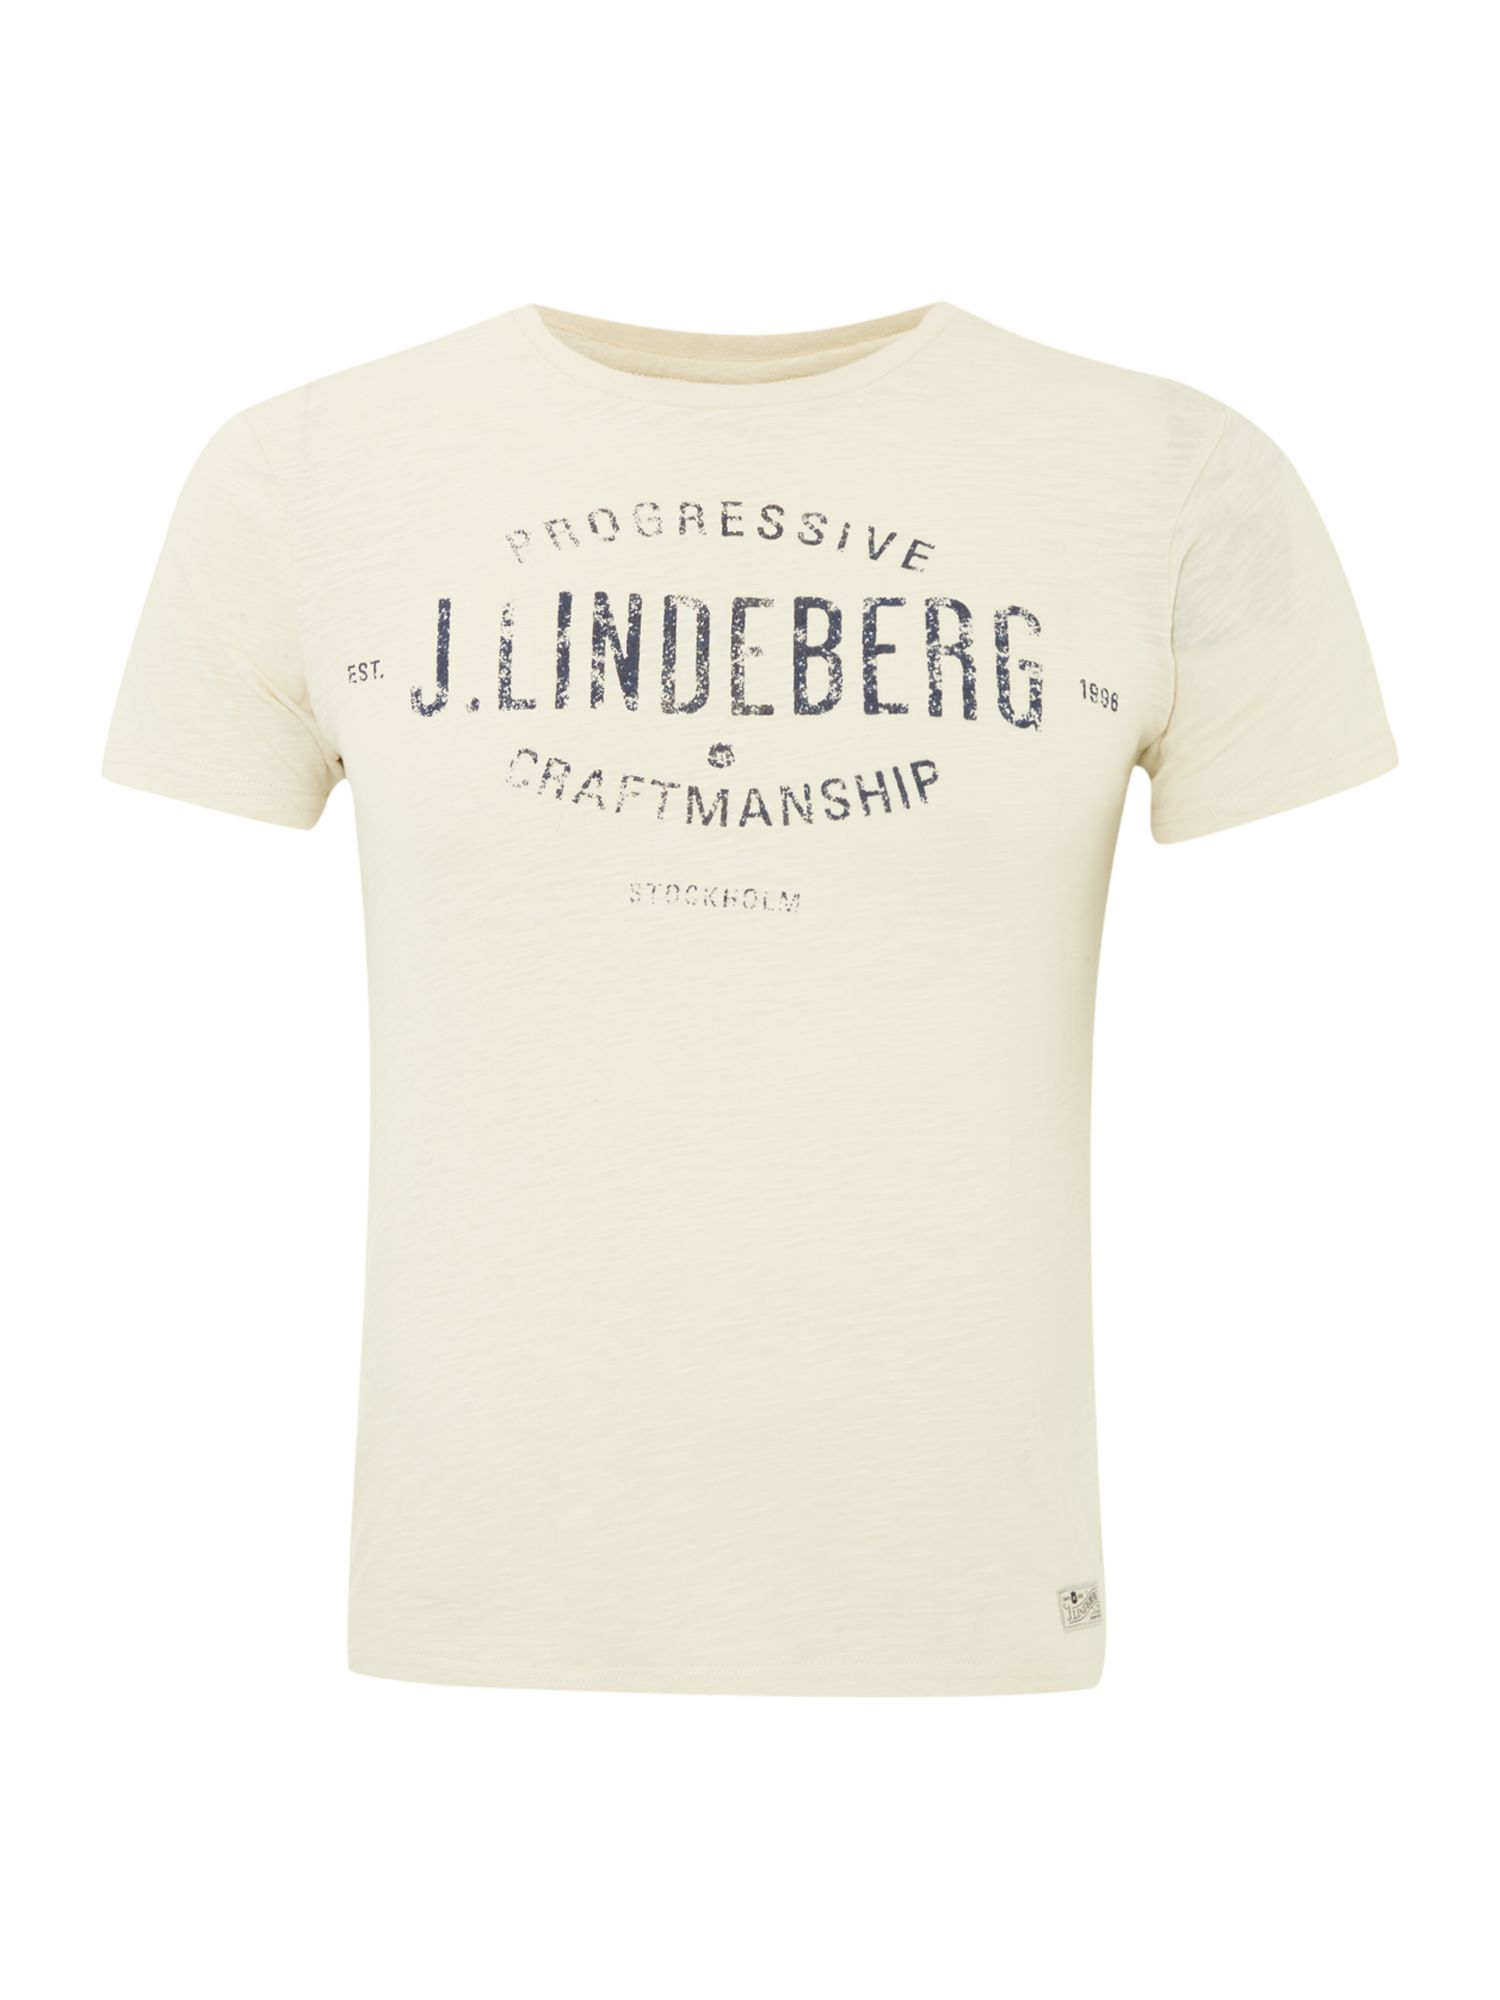 Alec slub t-shirt with progressive logo